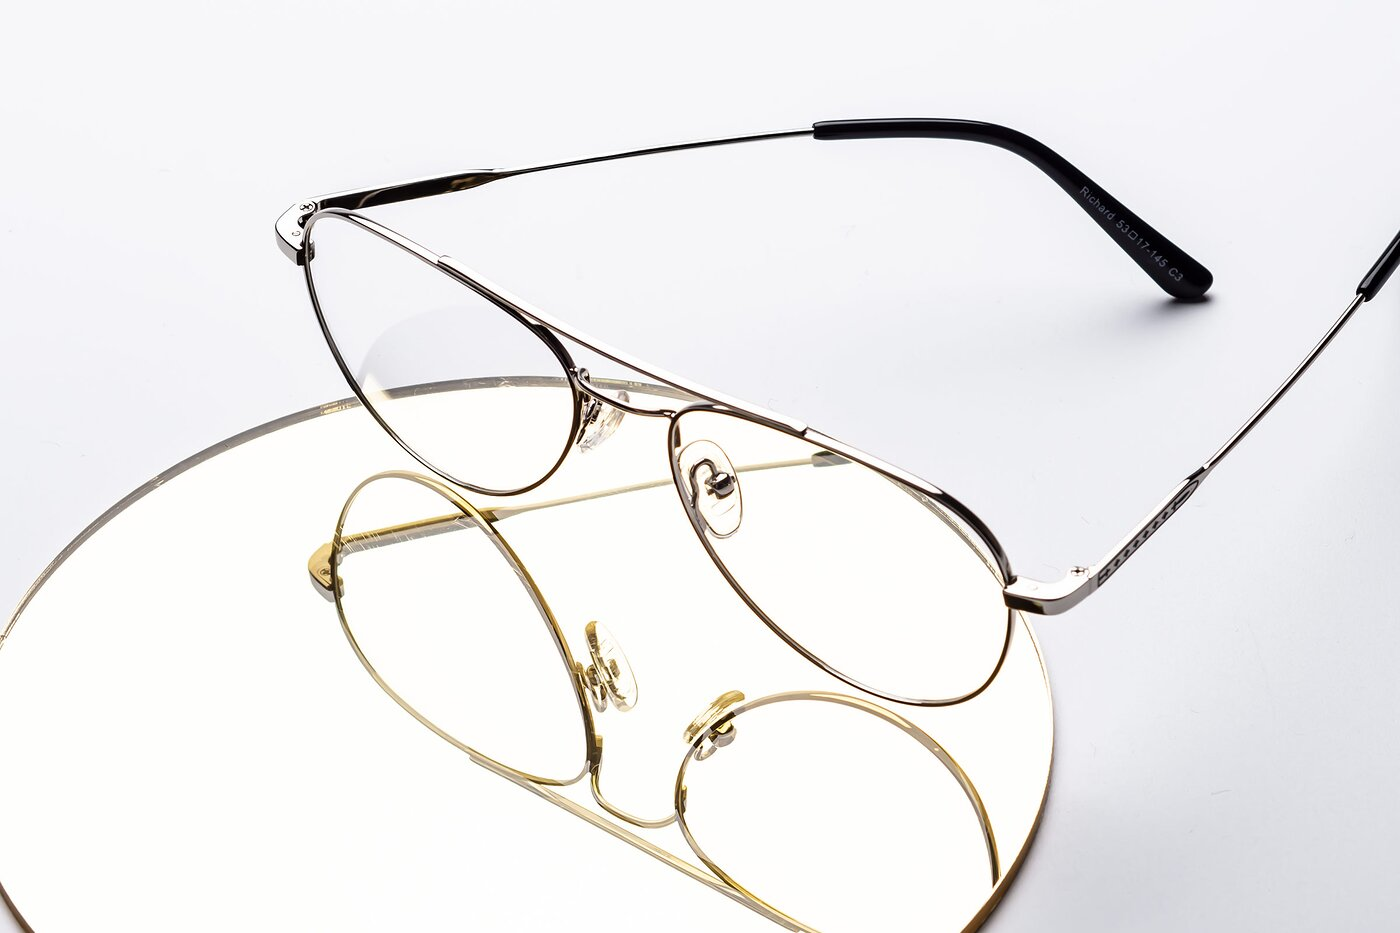 Silver Lightweight Metal Aviator Eyeglasses